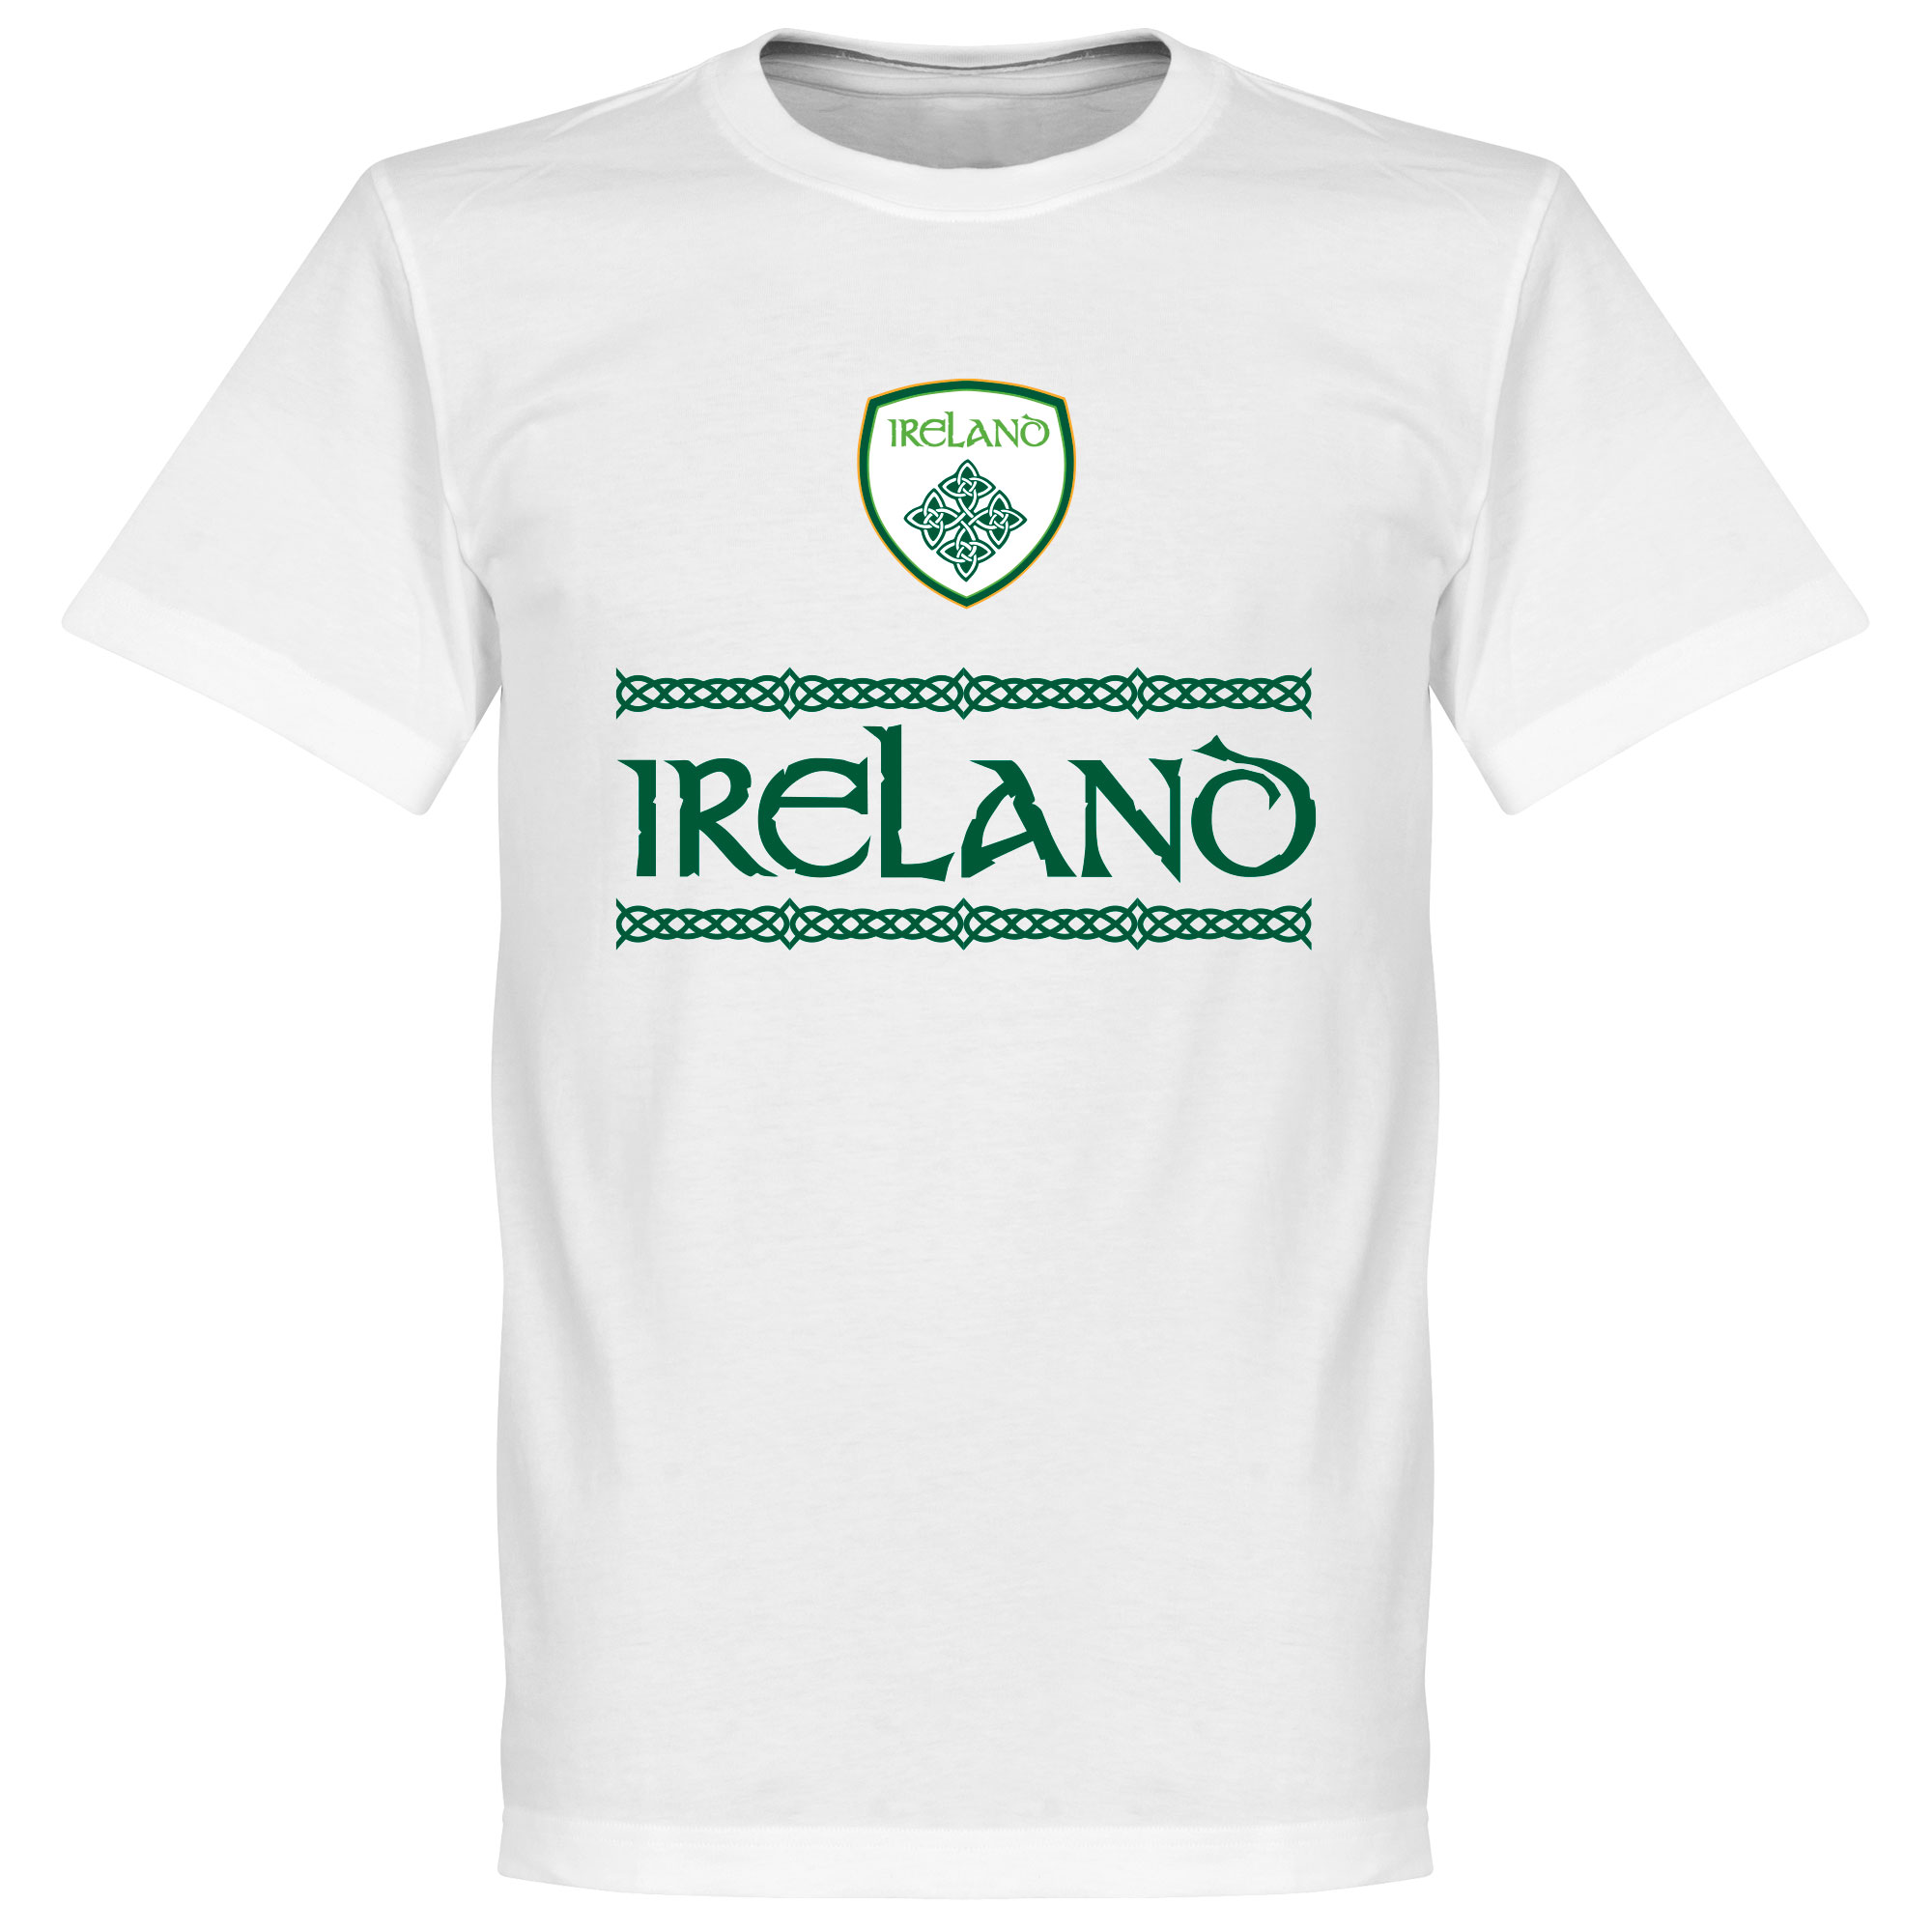 Ireland Team Tee - White - L